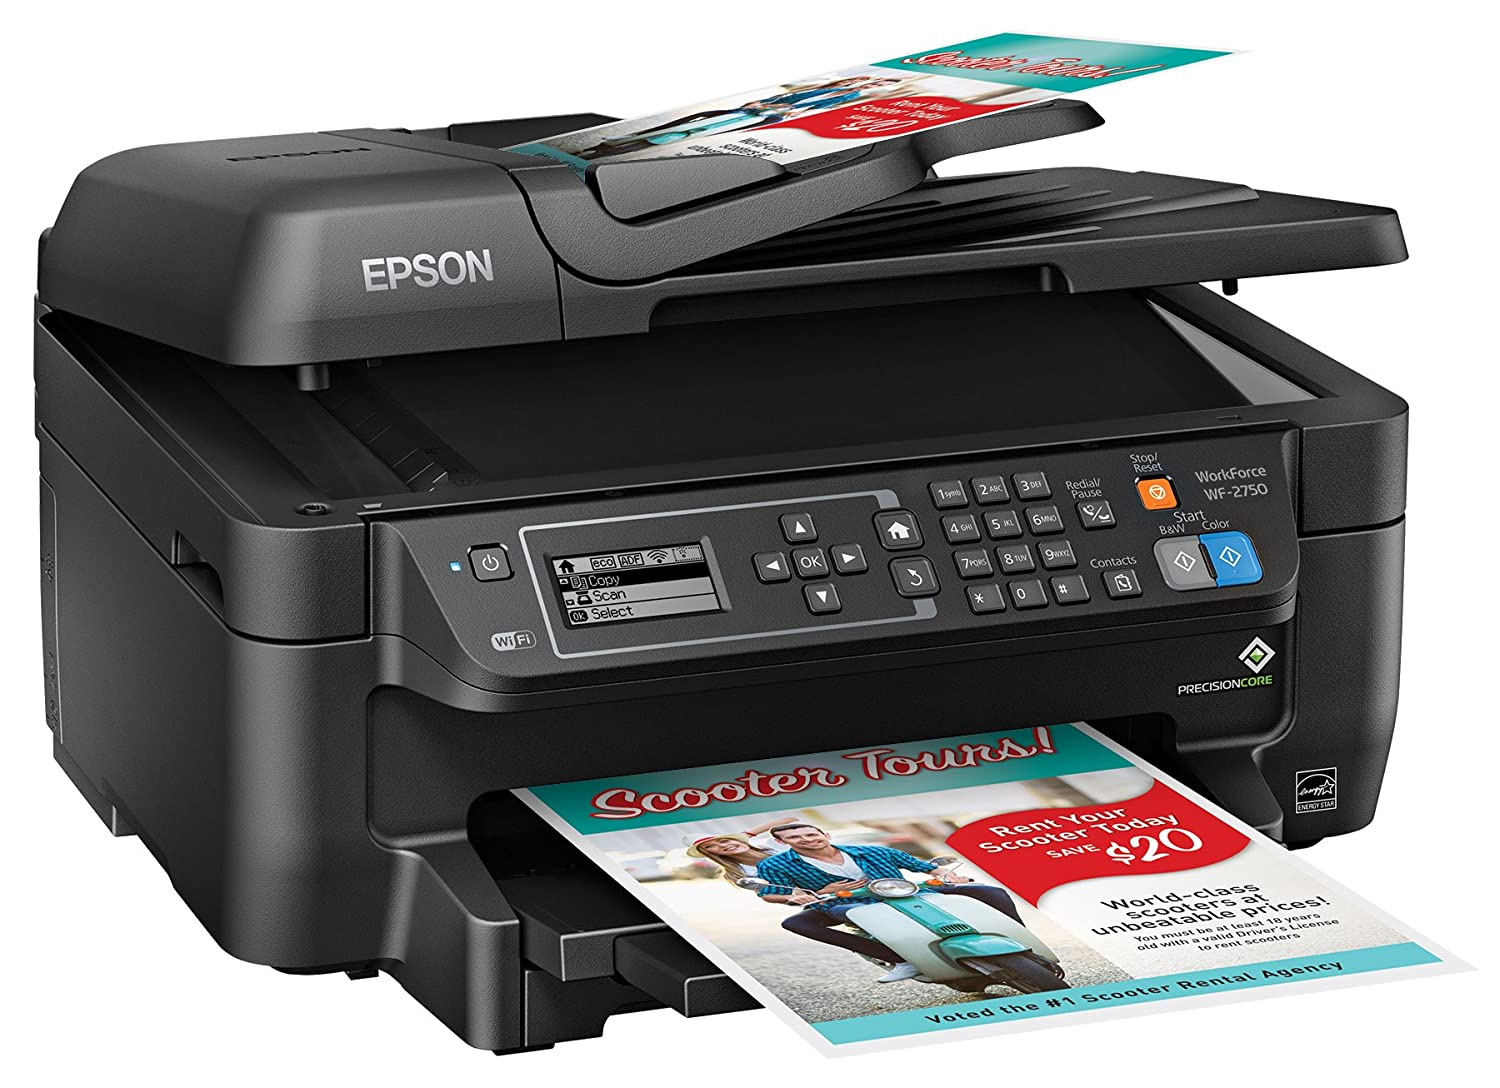 Photo color printer - Amazon Com Epson Wf 2750 All In One Wireless Color Printer With Scanner Copier Fax Electronics